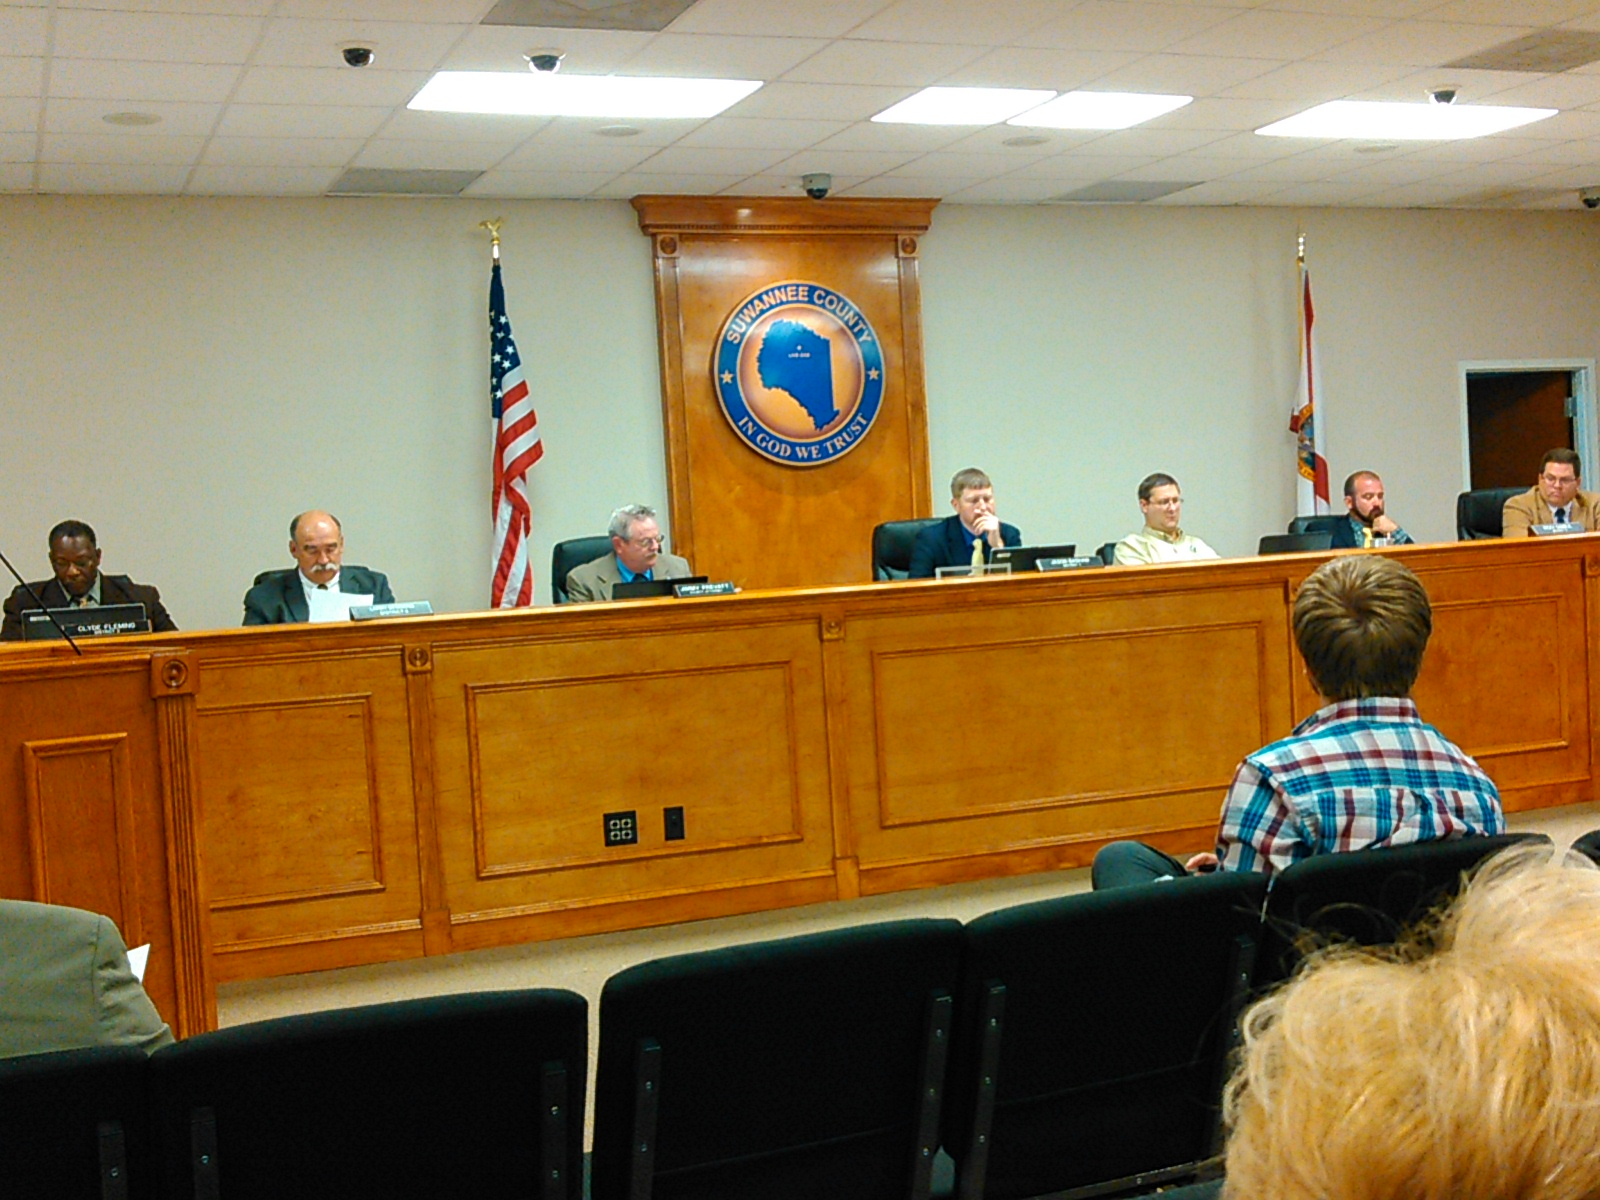 1600x1200 Commissioner Wainwright proposes to send the letter, in Suwannee BOCC votes 4:1 to ask Army Corps of Engineers to investigate Sabal Trail, by John S. Quarterman, for WWALS.net, 5 April 2016